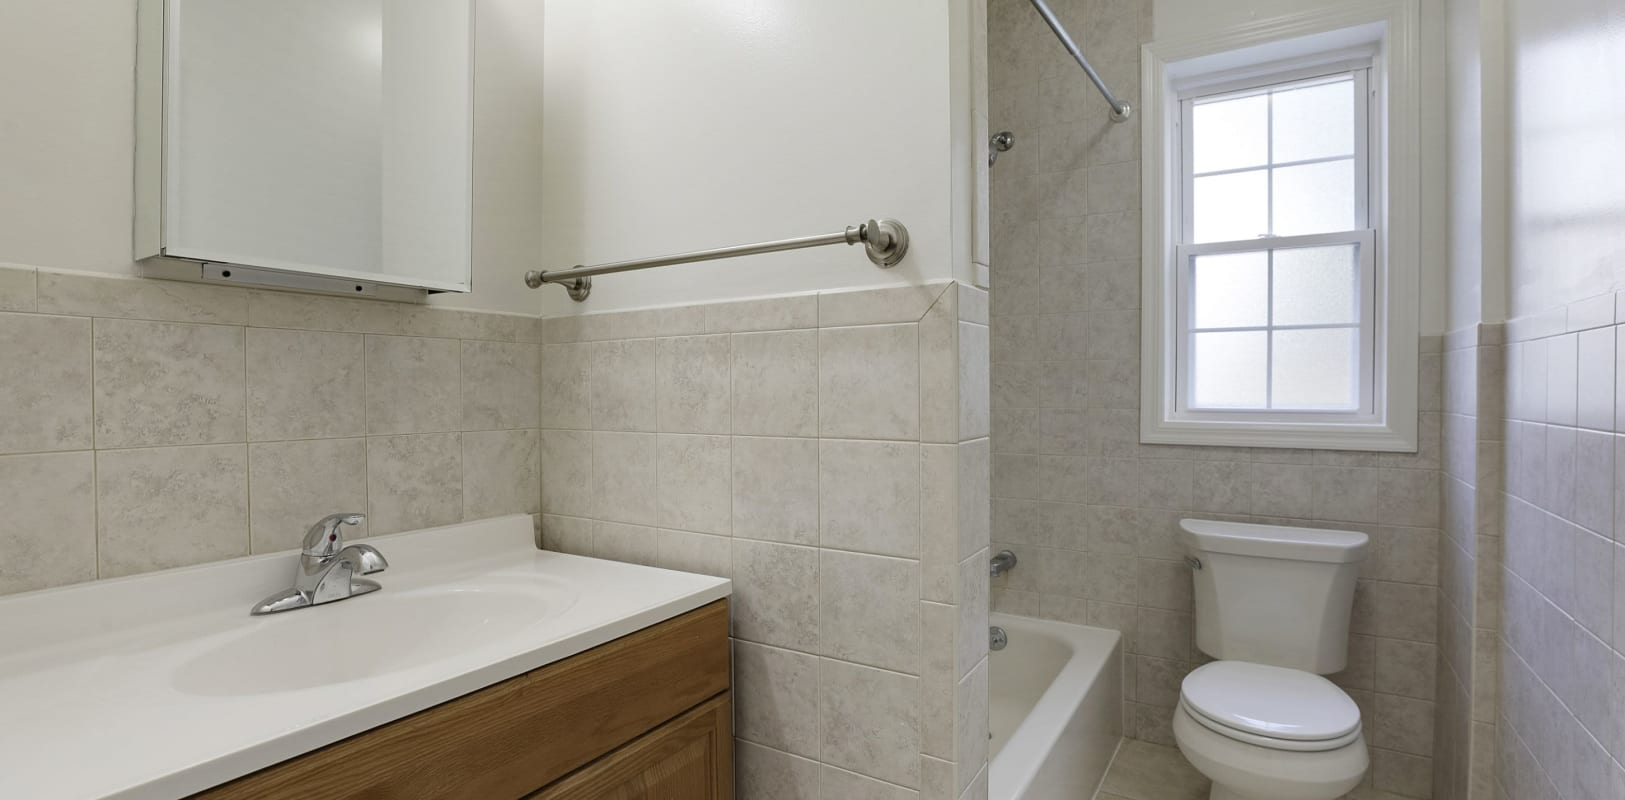 Clean bathroom at Mayflower Apartments in Ridgewood, New Jersey